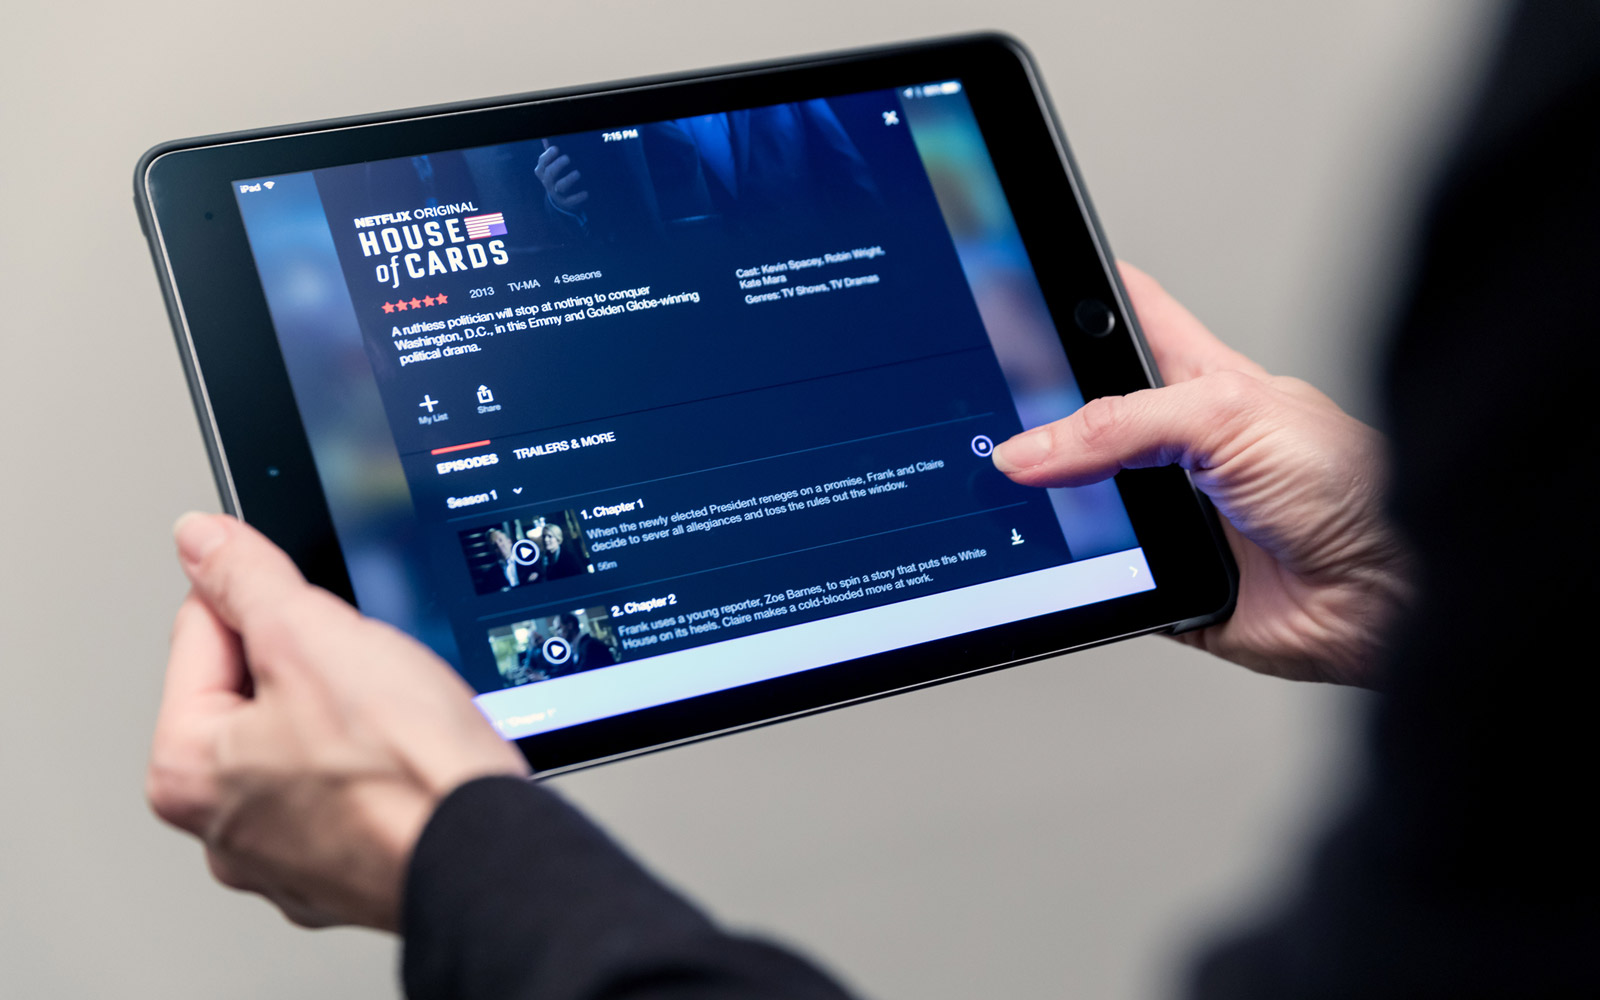 Human Hand Holding Apple ipad with Netflix Application